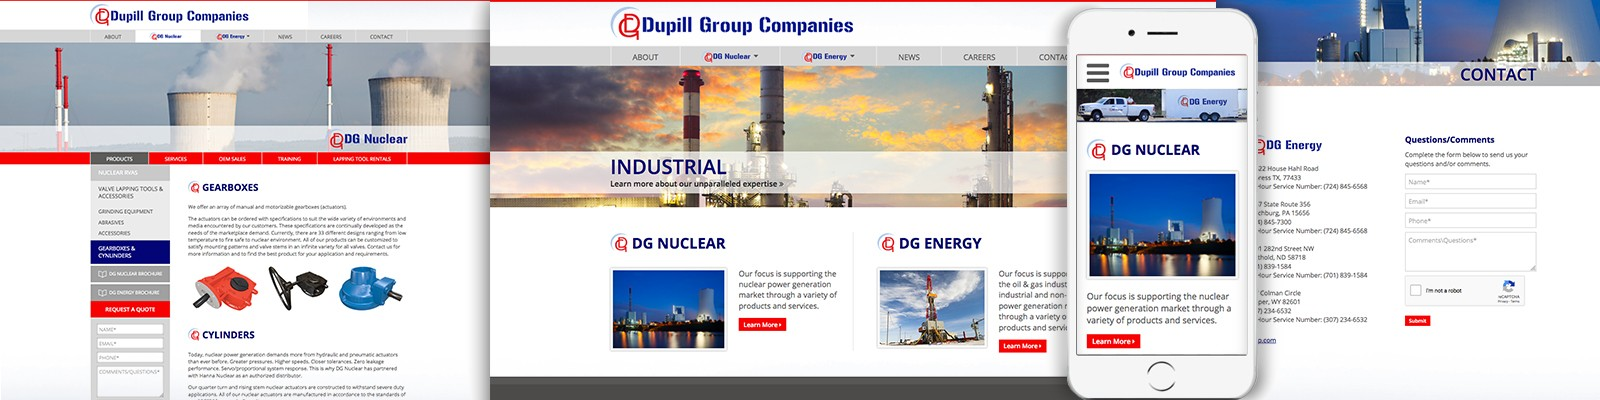 Dupill Group